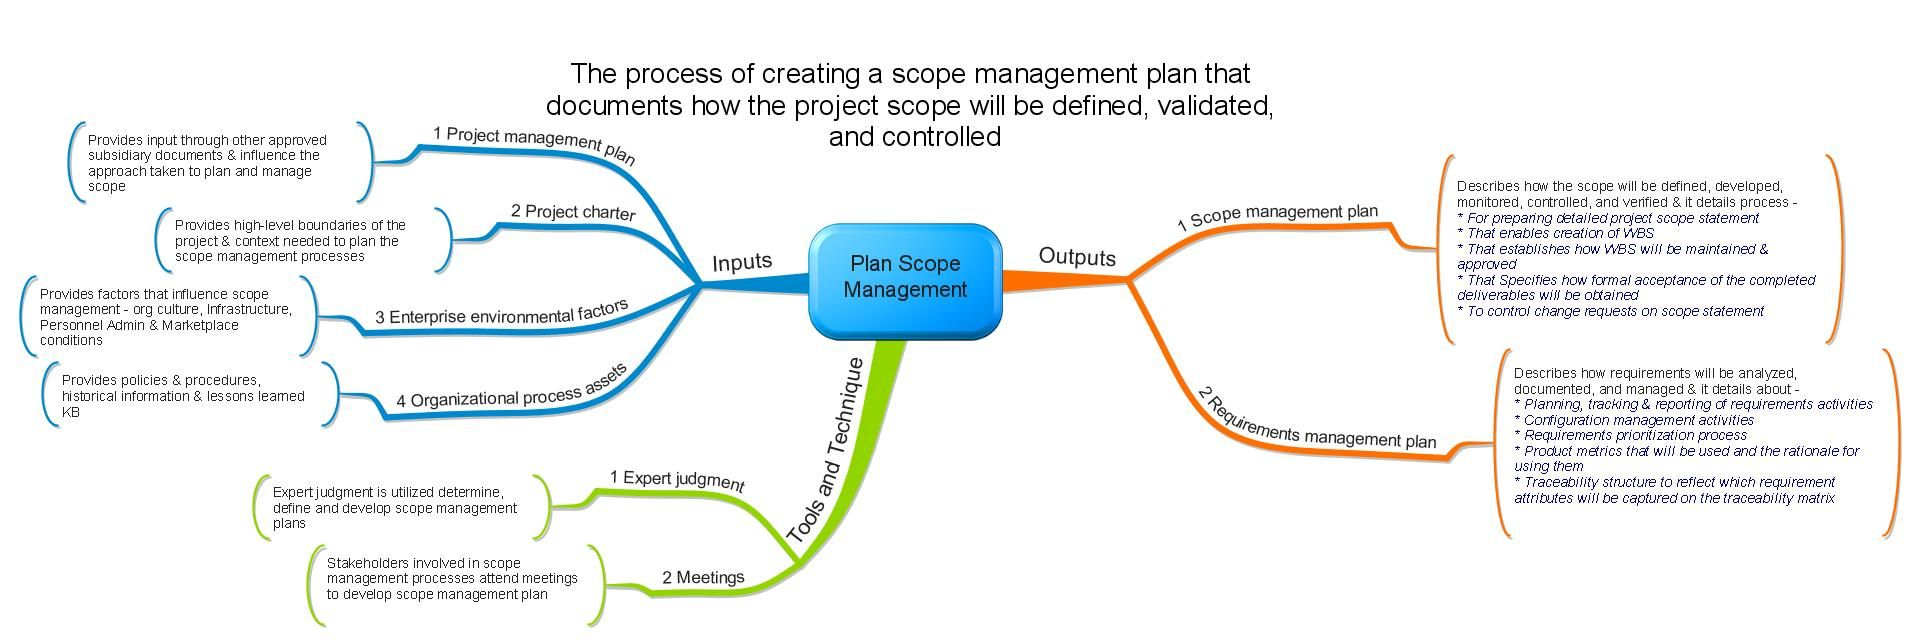 Mind map of pmp exam pmp itto chart project management capm mind map of pmp exam pmp itto chart project management capmpmp microsoft project pinterest pmp exam management and project management 1betcityfo Image collections